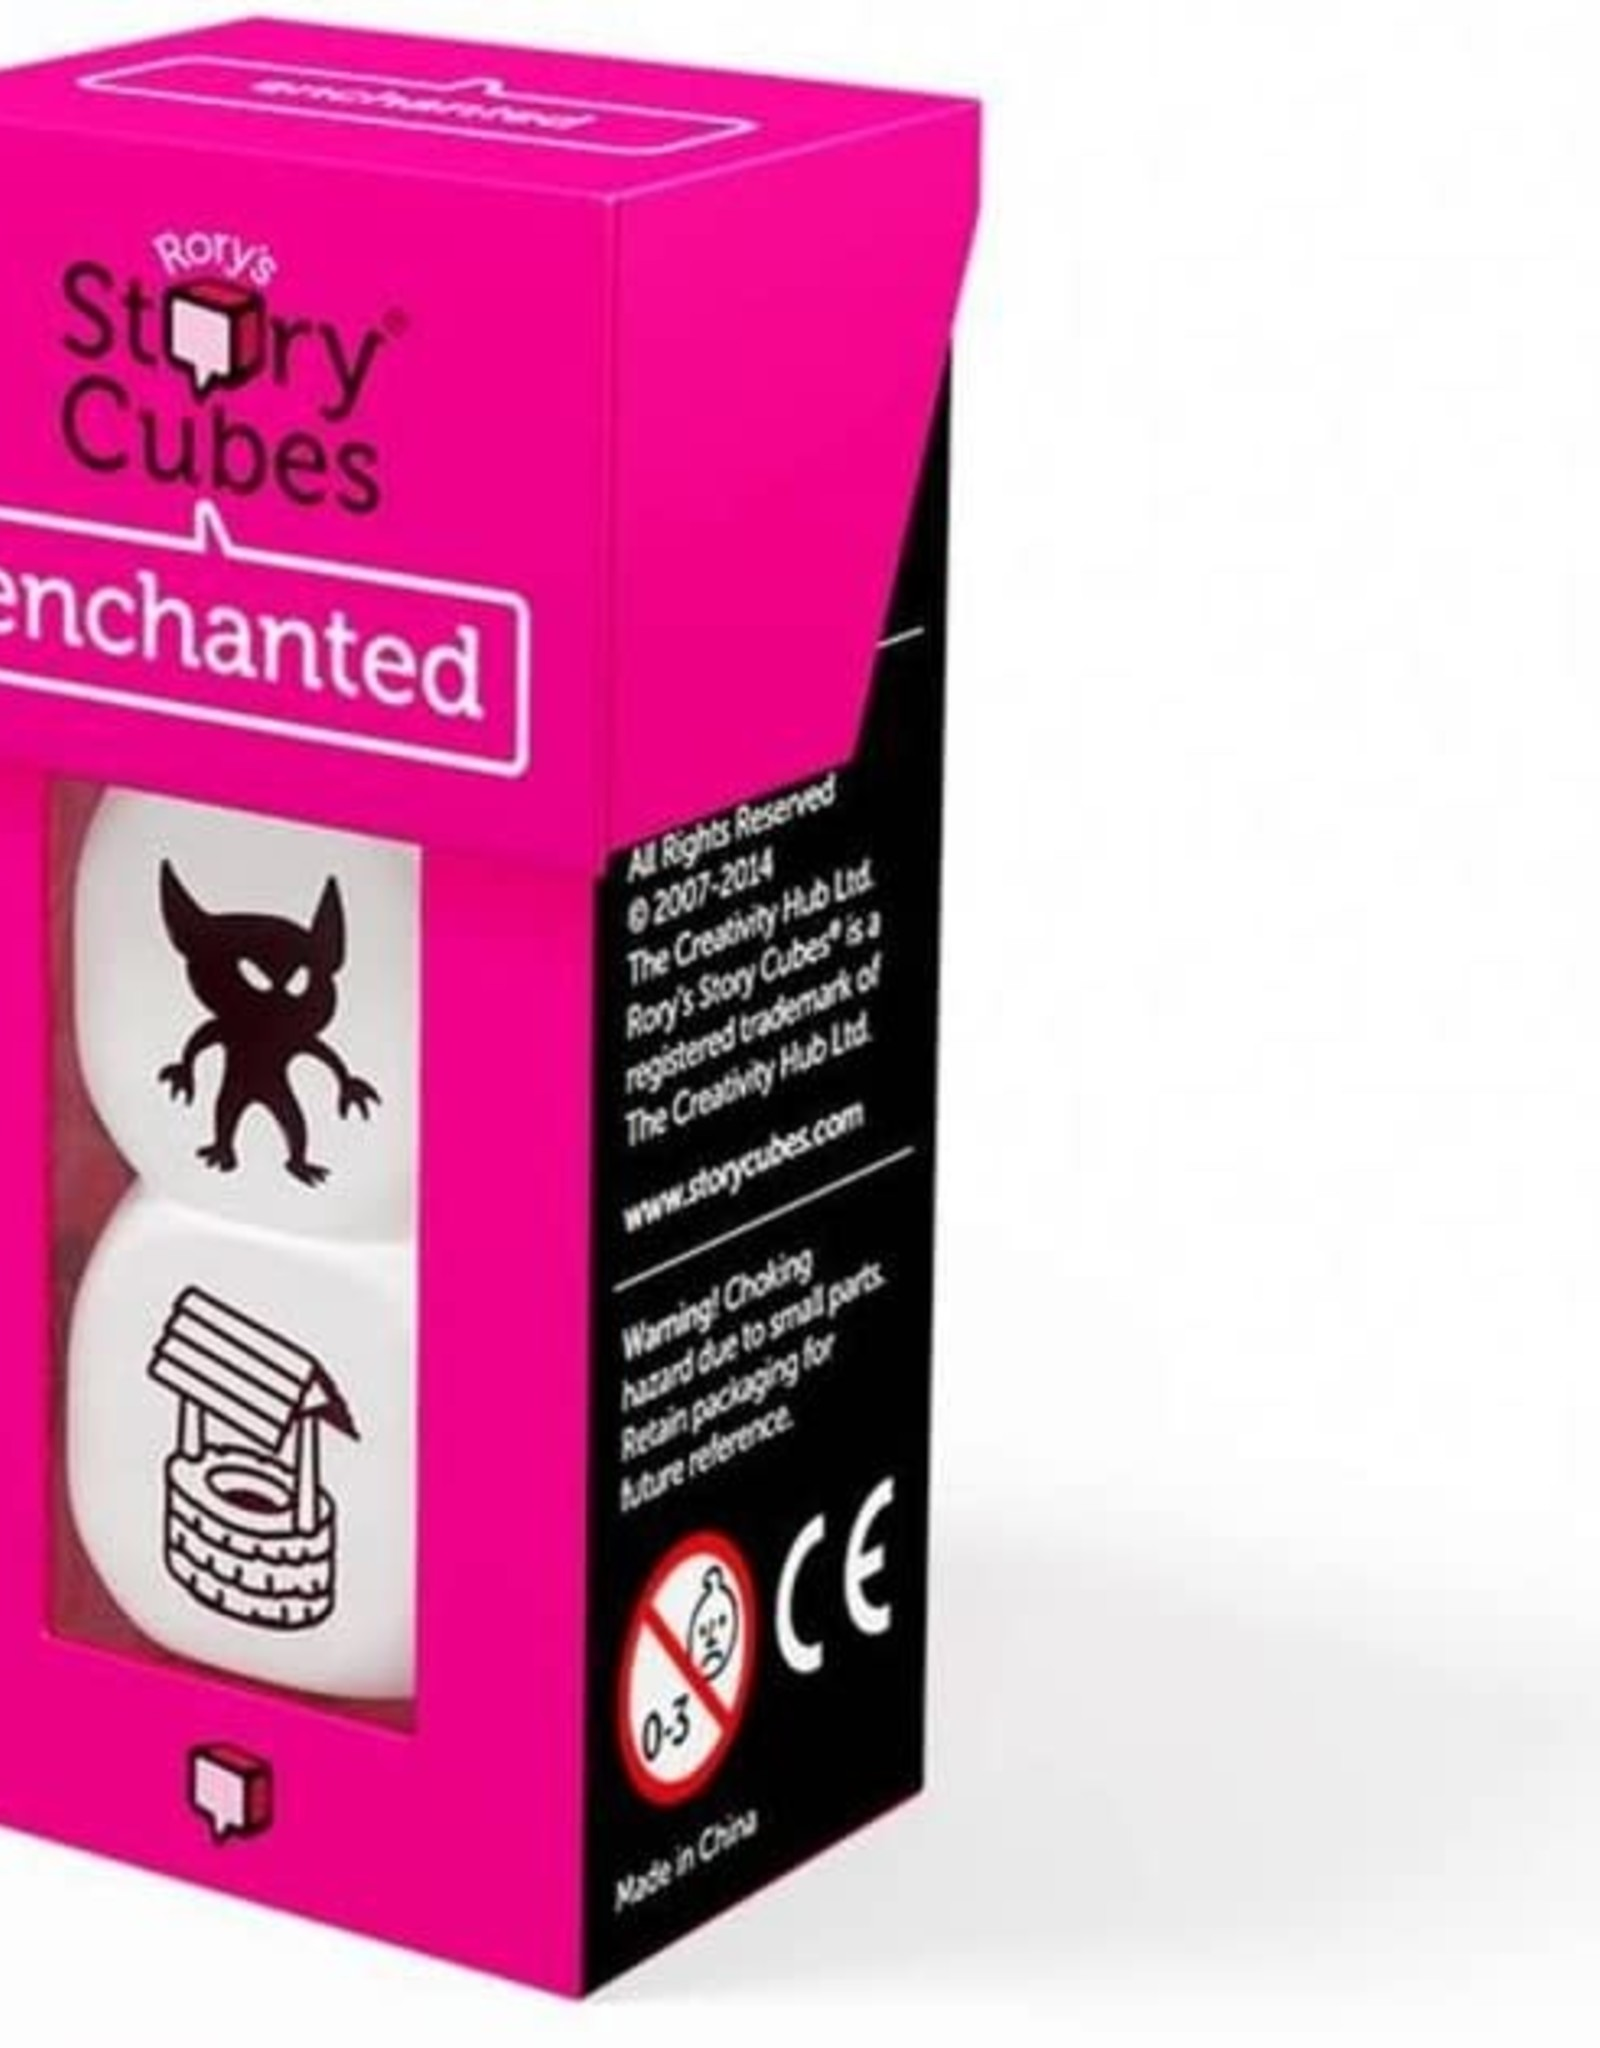 Rory's Story Cubes Enchanted